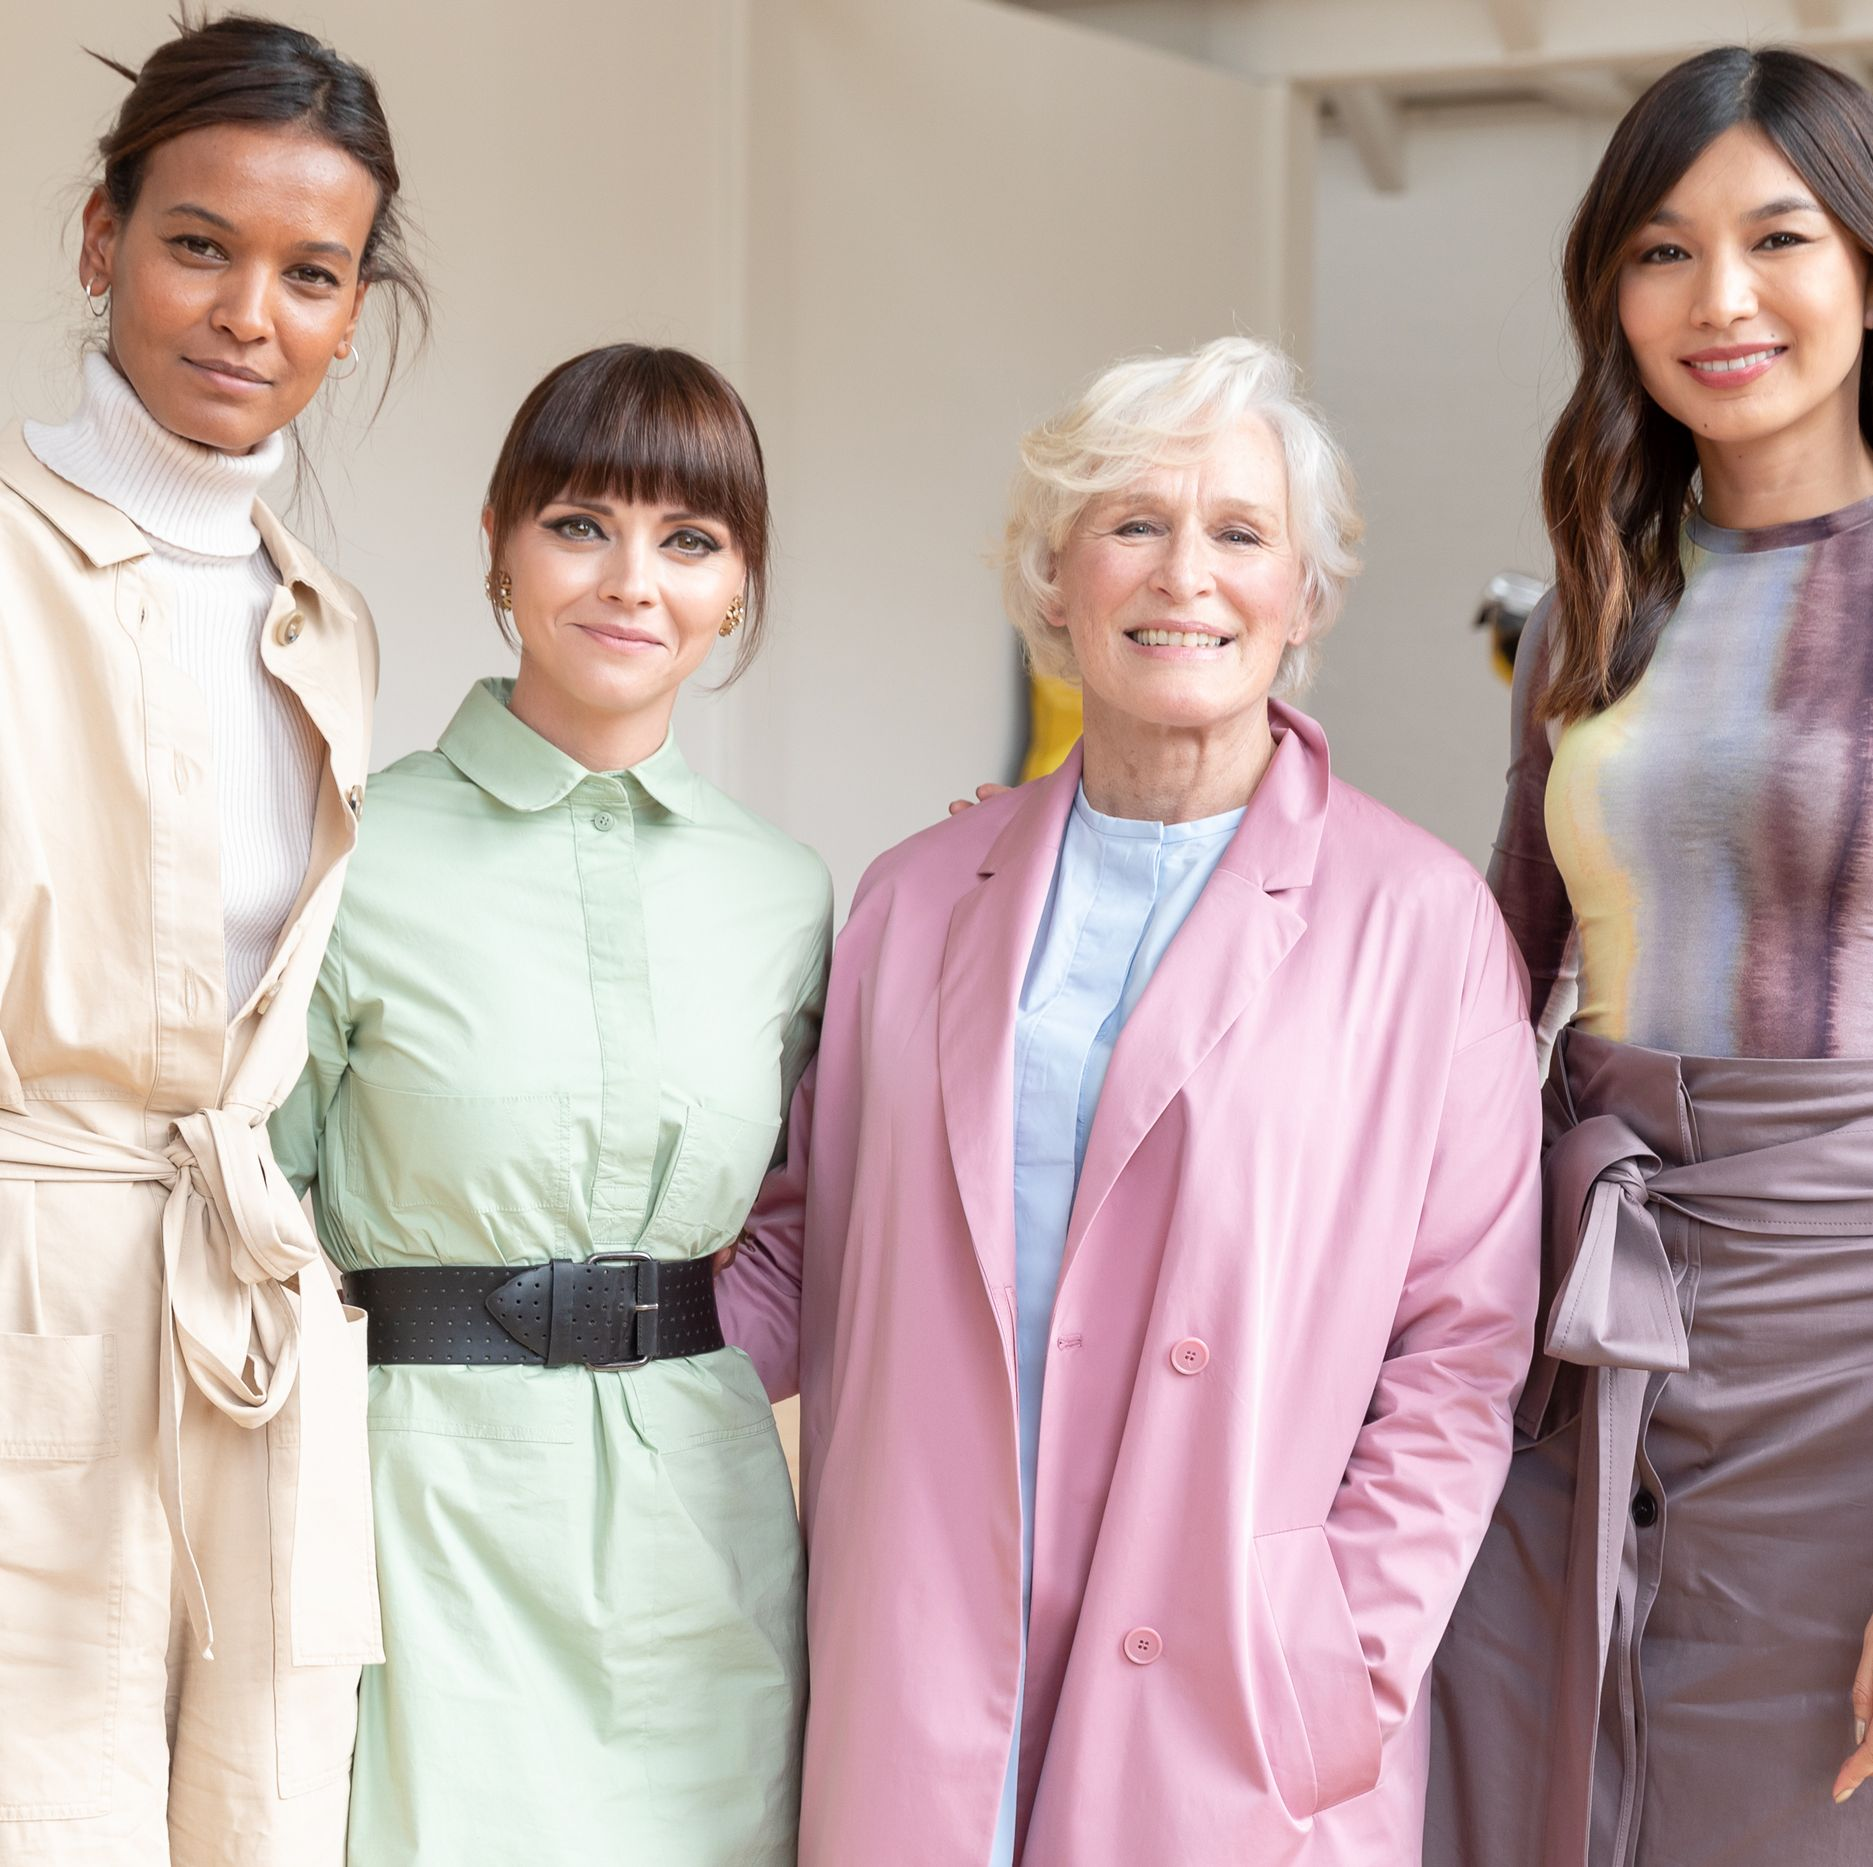 Glenn Close , Christina Ricci , Gemma Chen, and the model Liya Kebede convened on Saturday in Beacon, New York, 90 miles north of Manhattan, for the annual spring benefit organized by the Dia Art Foundation . There were a lot of well-dressed art folk, philanthropists and go-gooders, and press milling about, but these four women, standing together in varying shades of pastel by the label COS, stood out like a fabulous network of fashionable Avengers.